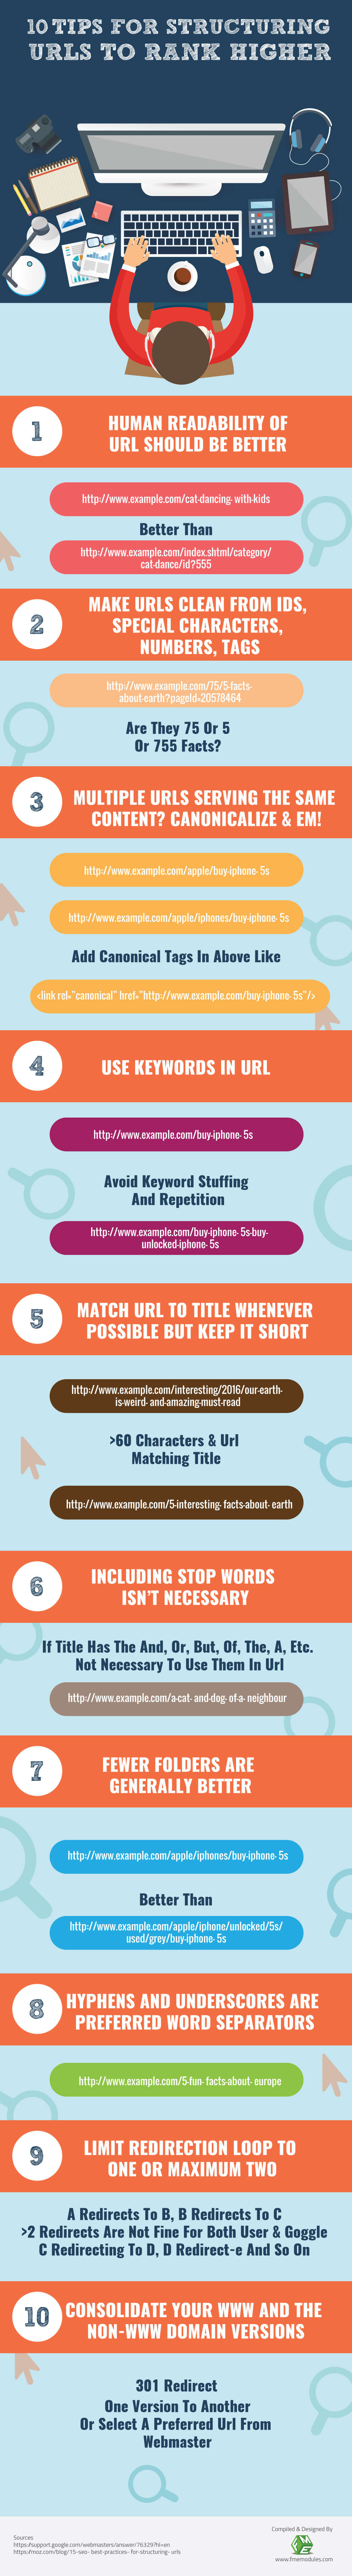 structuring-urls-to-rank-higher-infographic-plaza